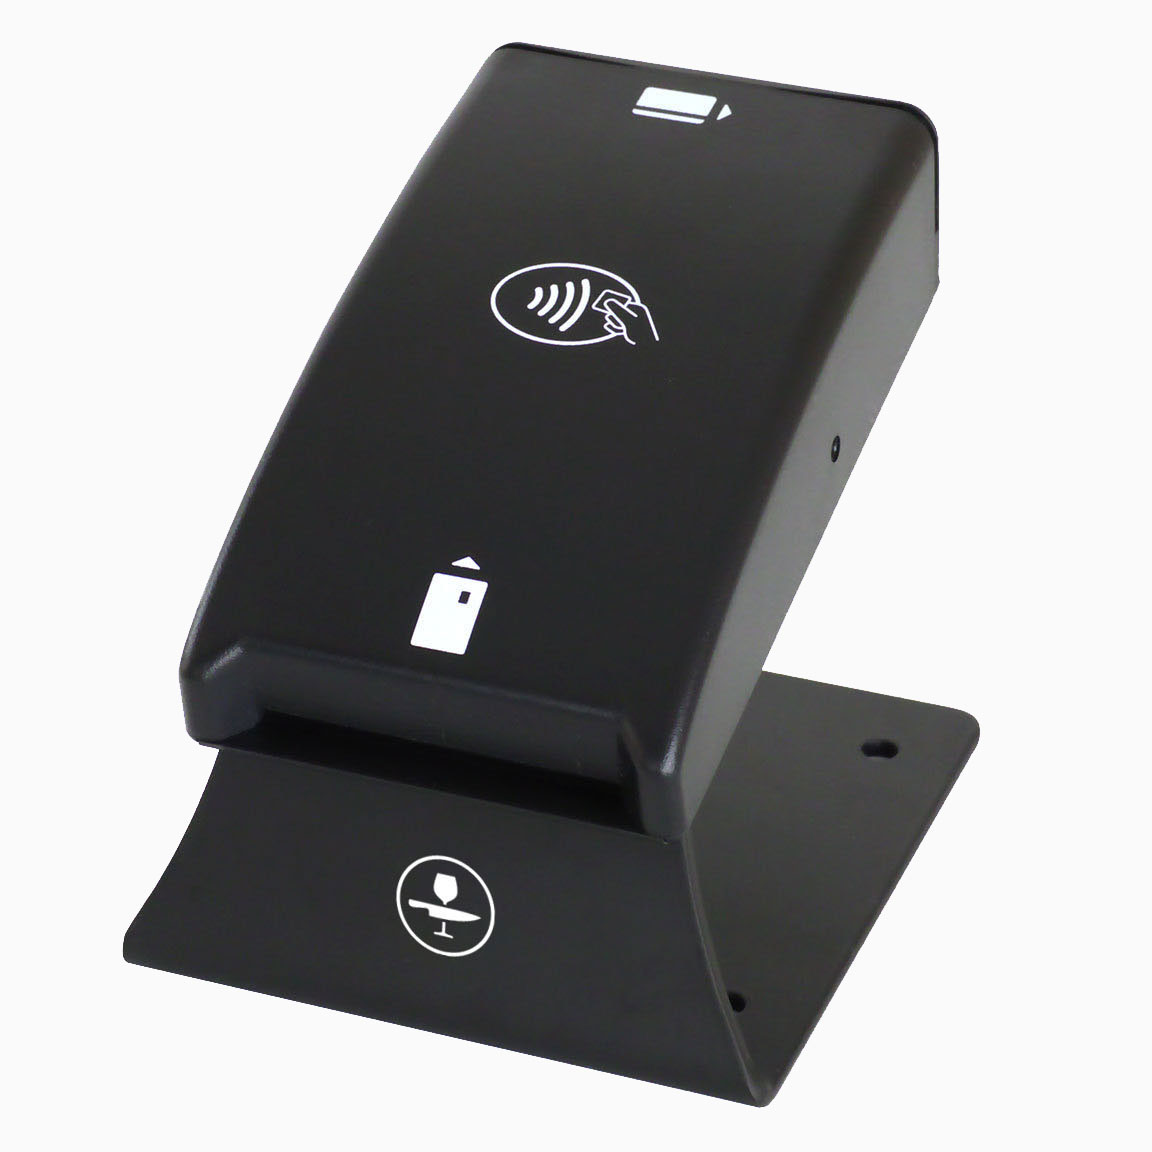 Upserve EMV Reader for Payments